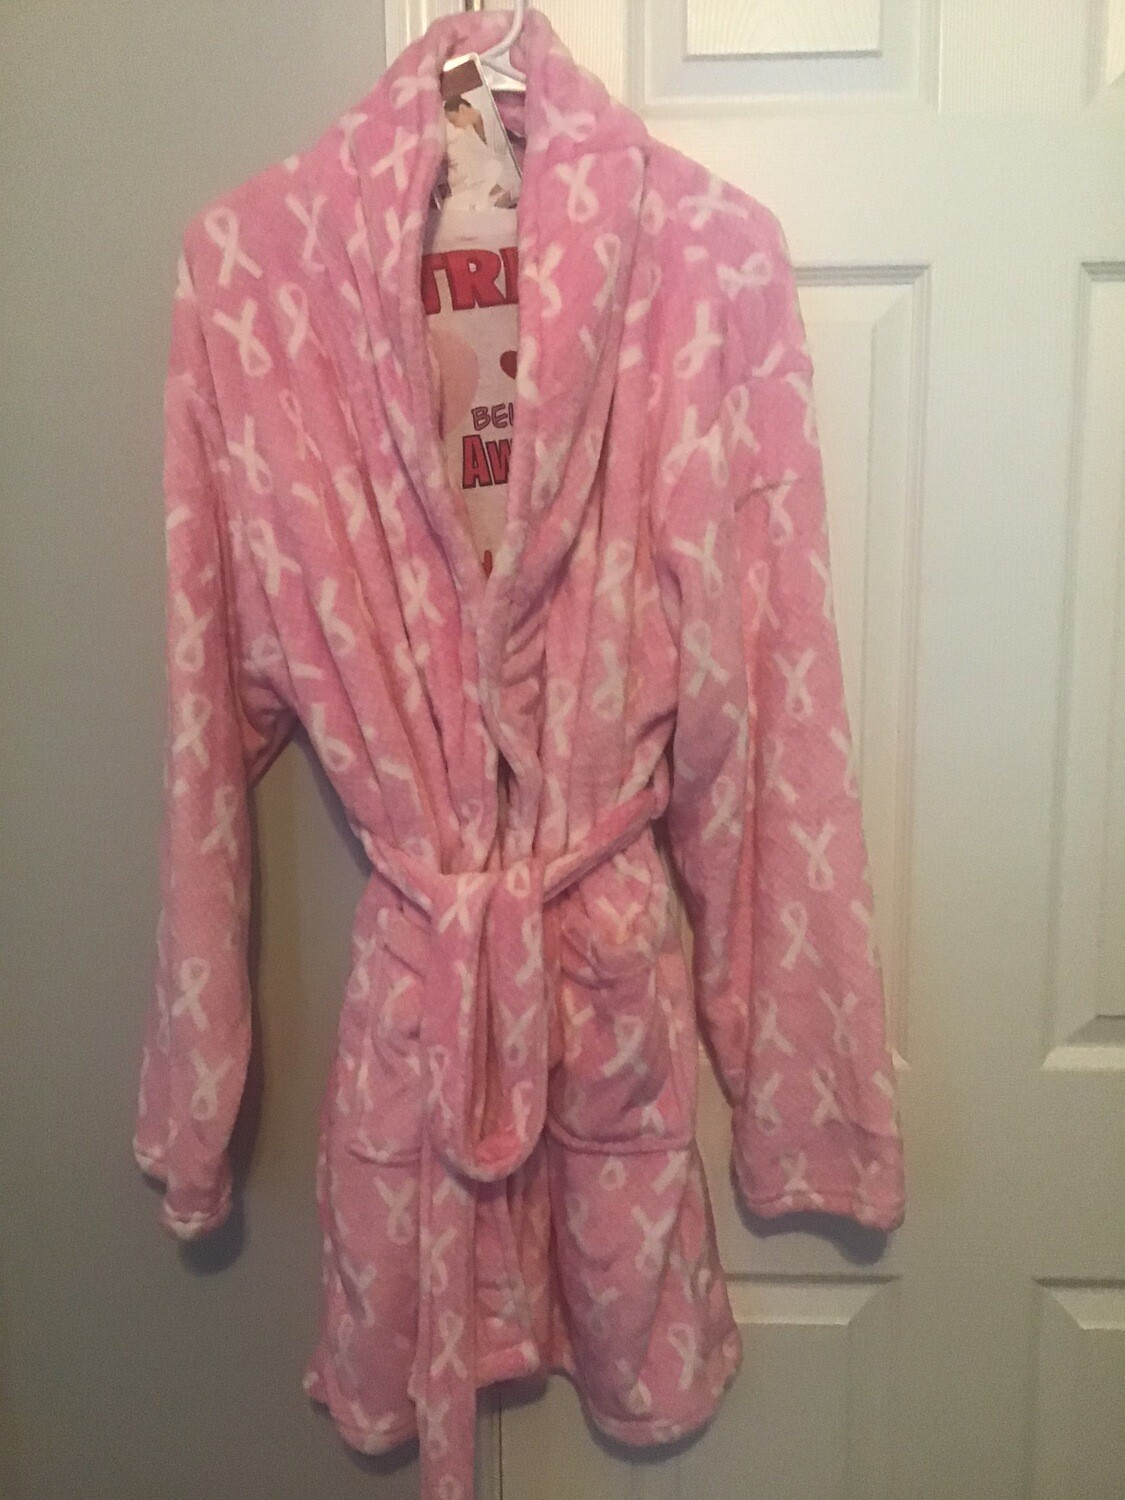 BREAST CANCER SUPPORT HOUSE COAT